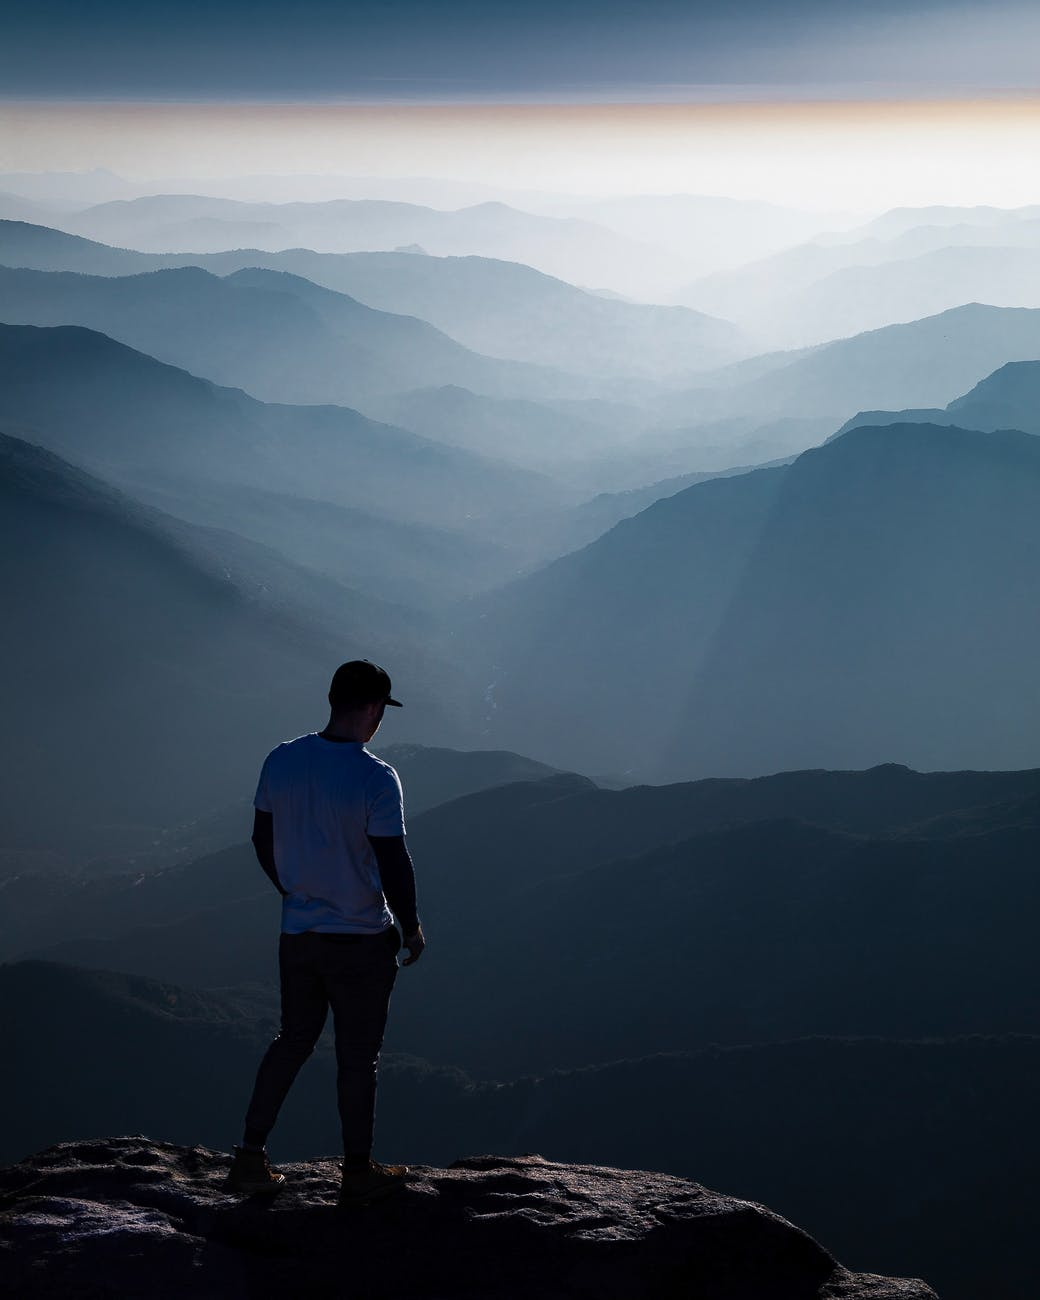 male traveler standing on top of mountain and admiring landscape